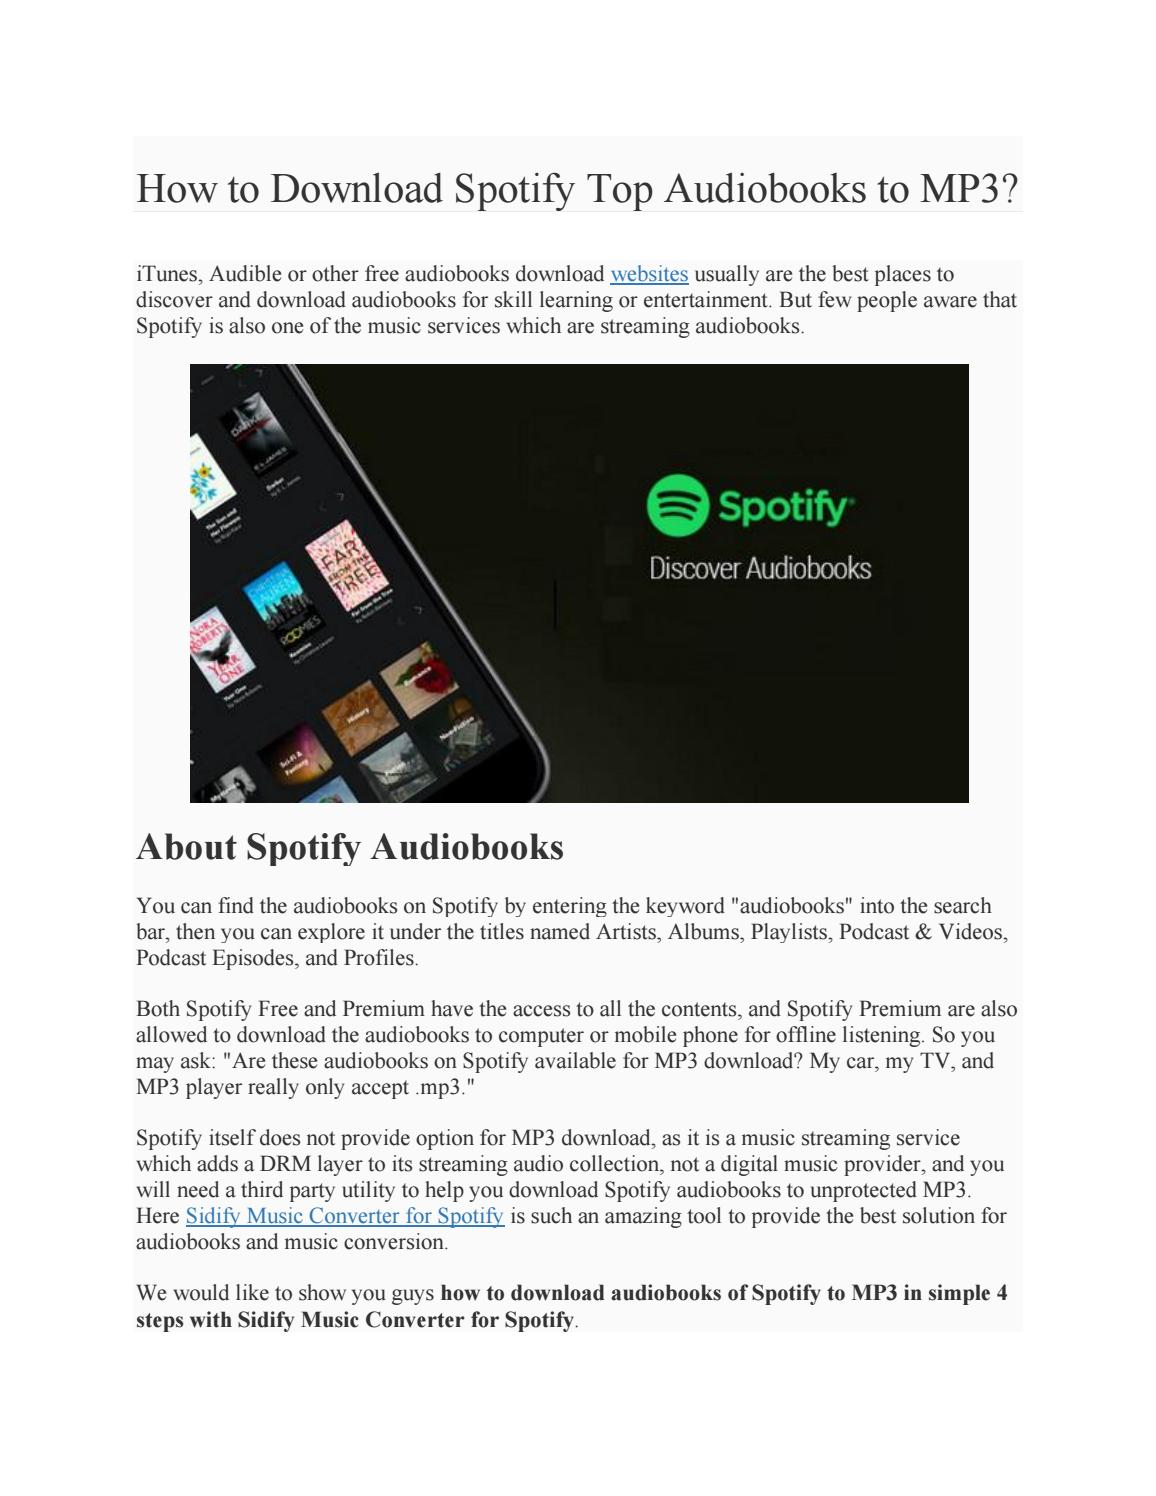 How to Download Spotify Top Audiobooks to MP3? by Paris Young - issuu